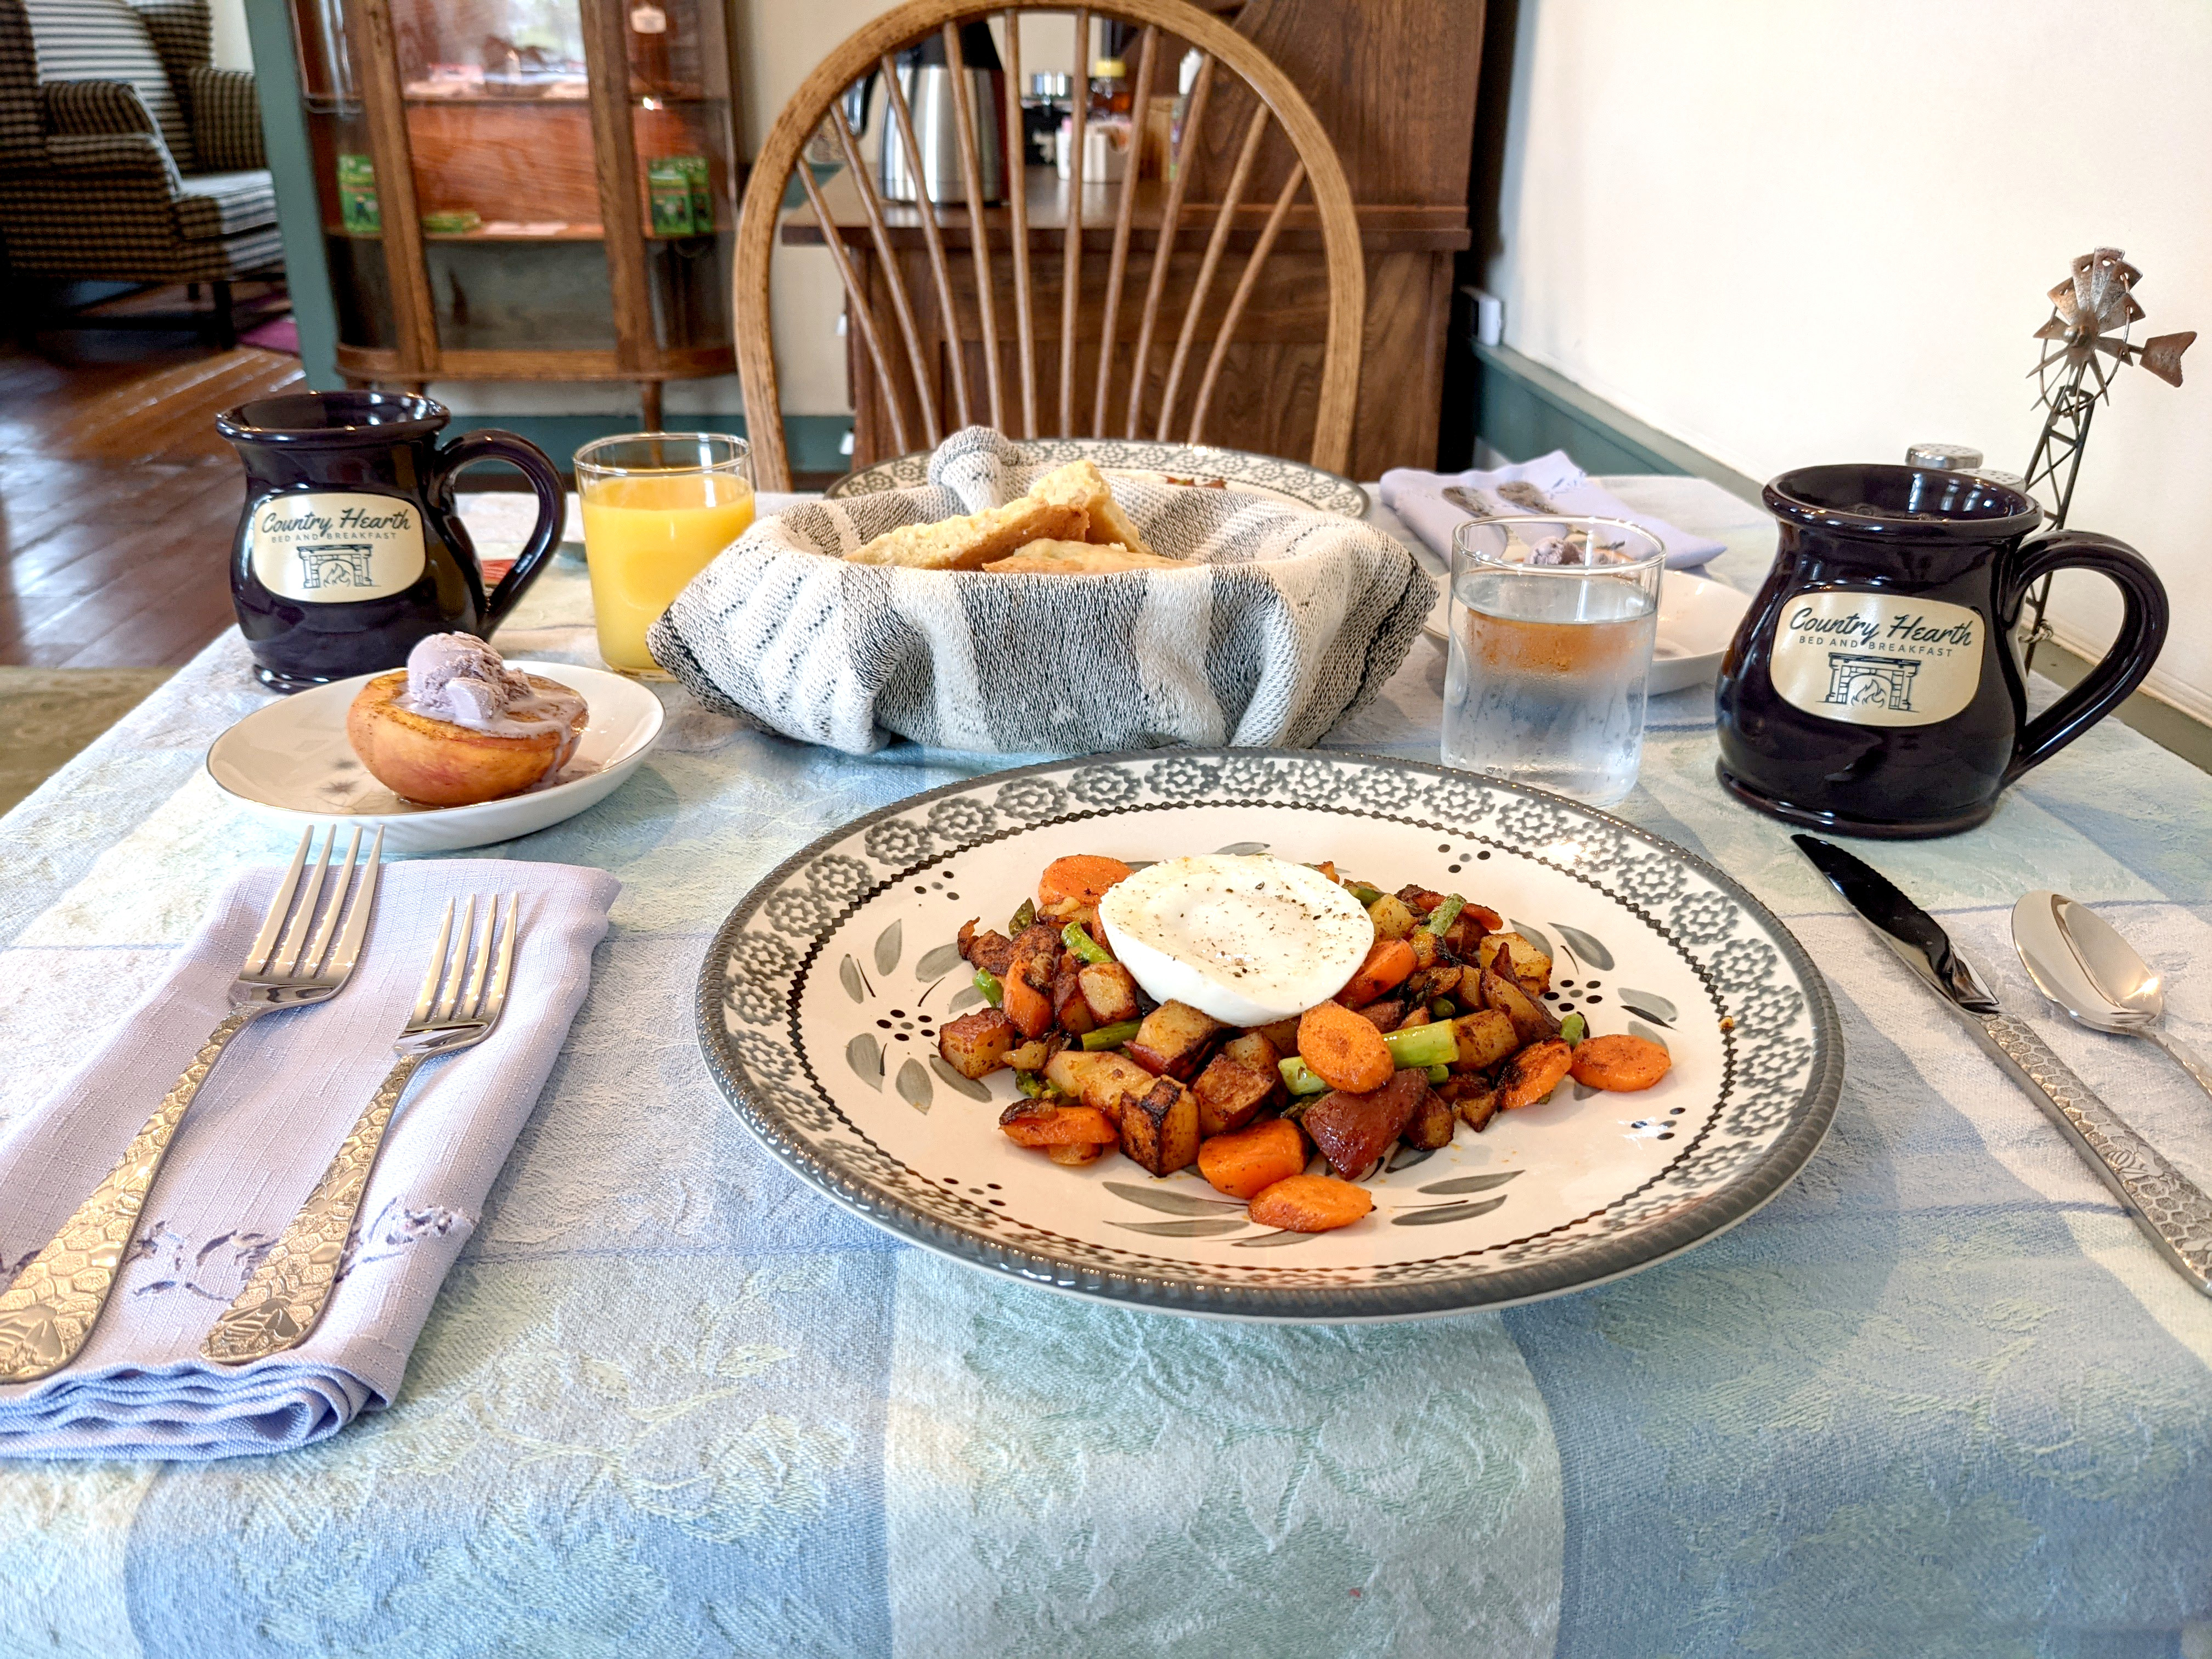 Poached egg and veggie hash